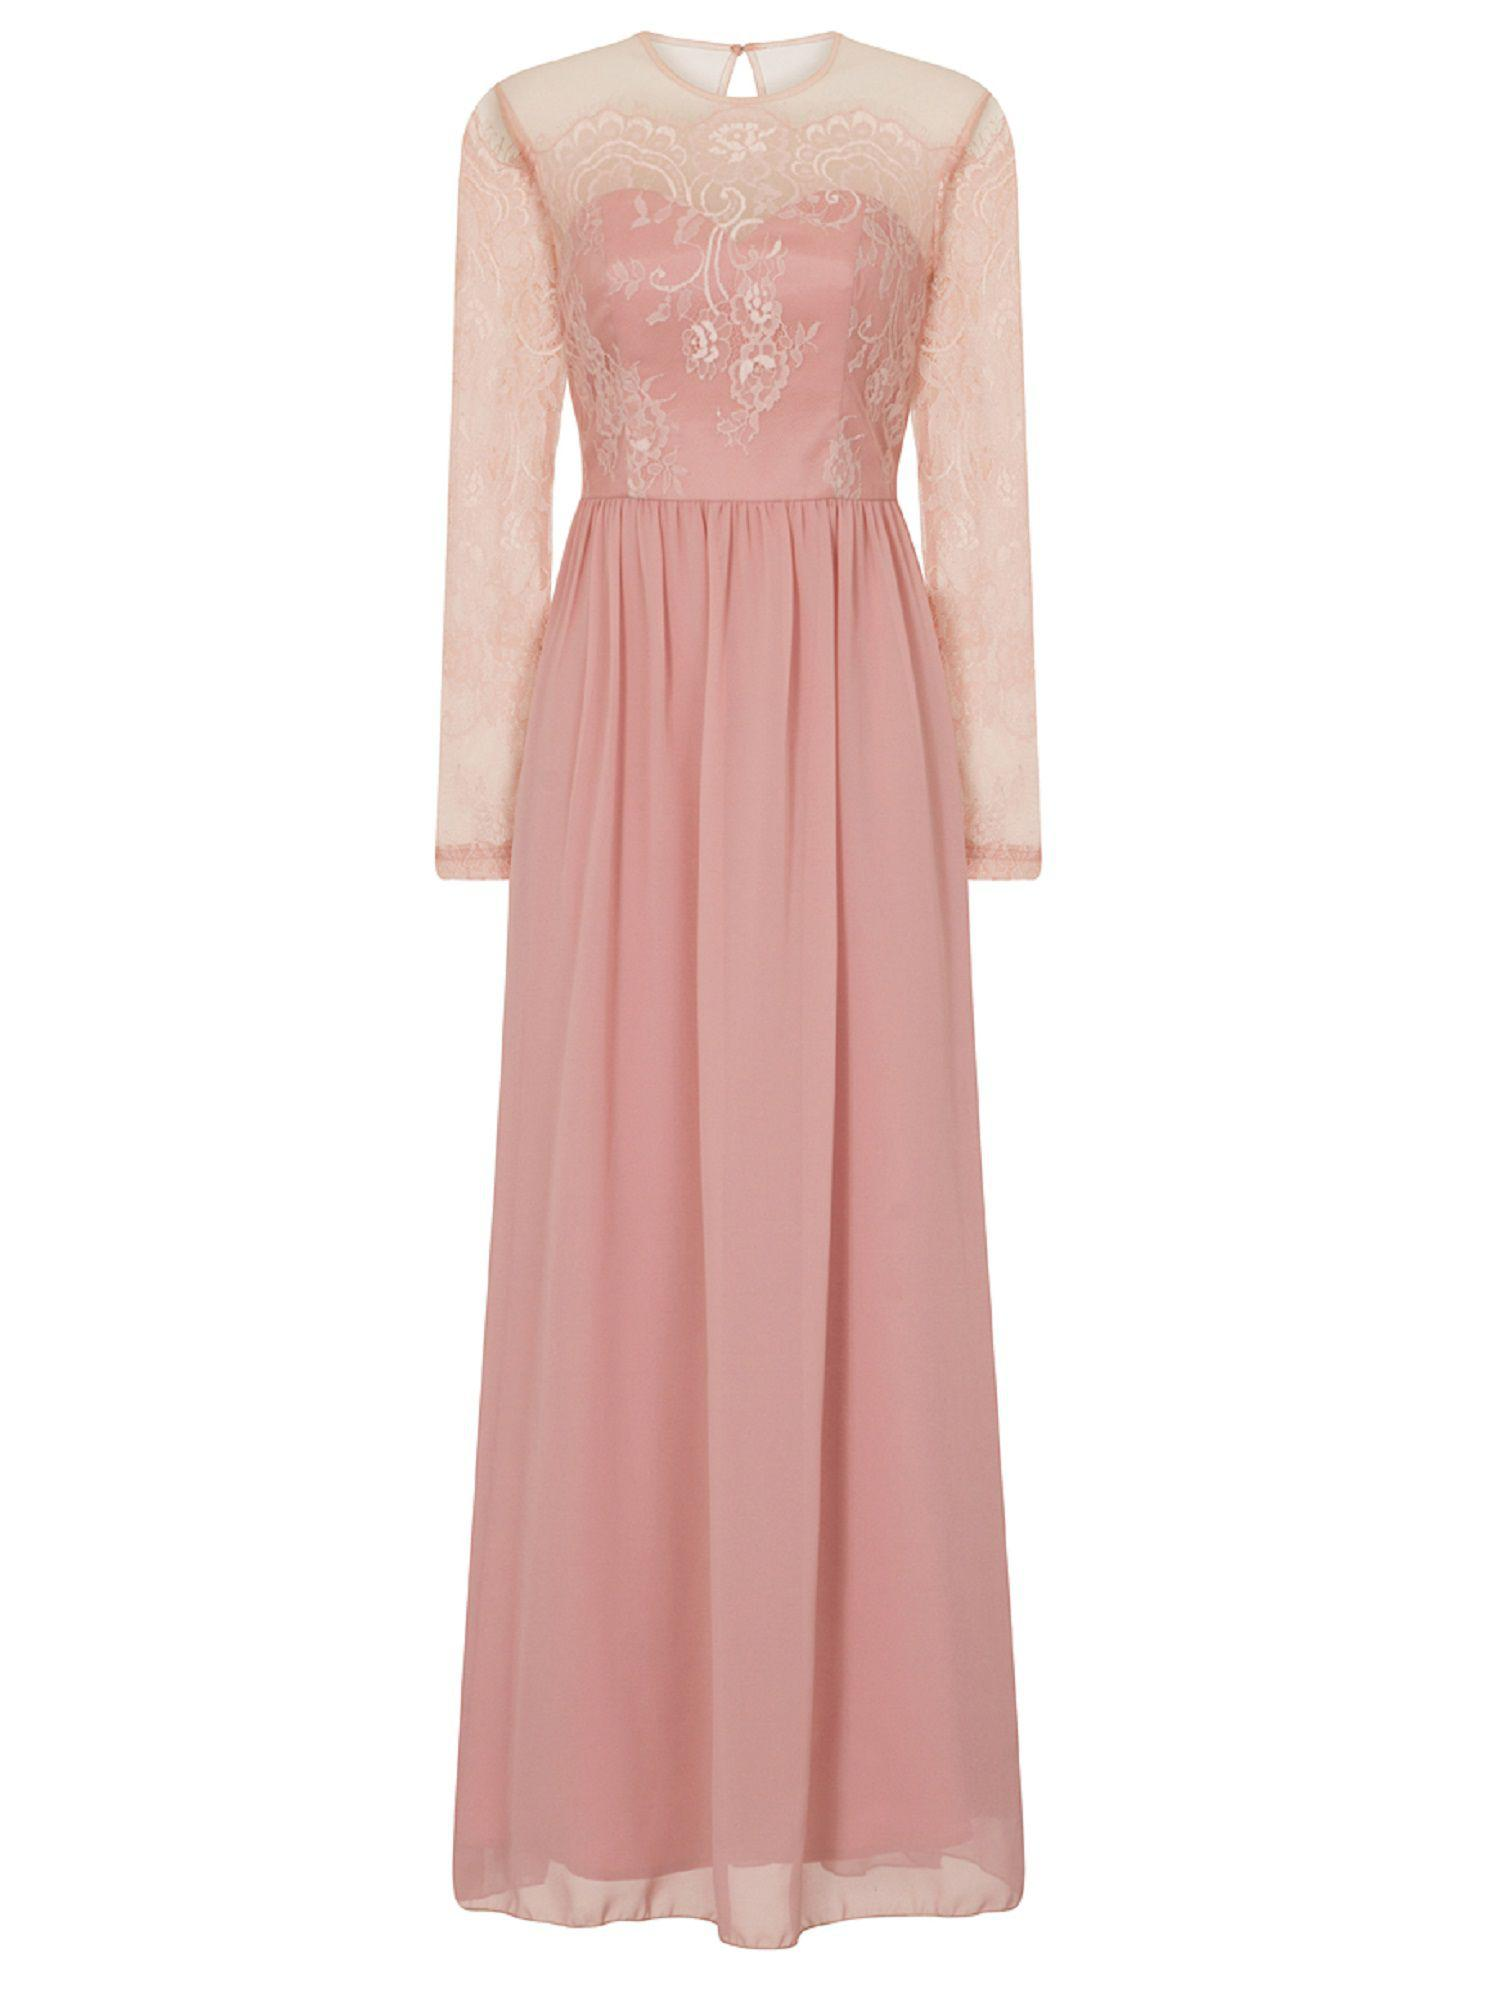 f8a0776445df Chi Chi London Lace Maxi Dress in Pink - Lyst